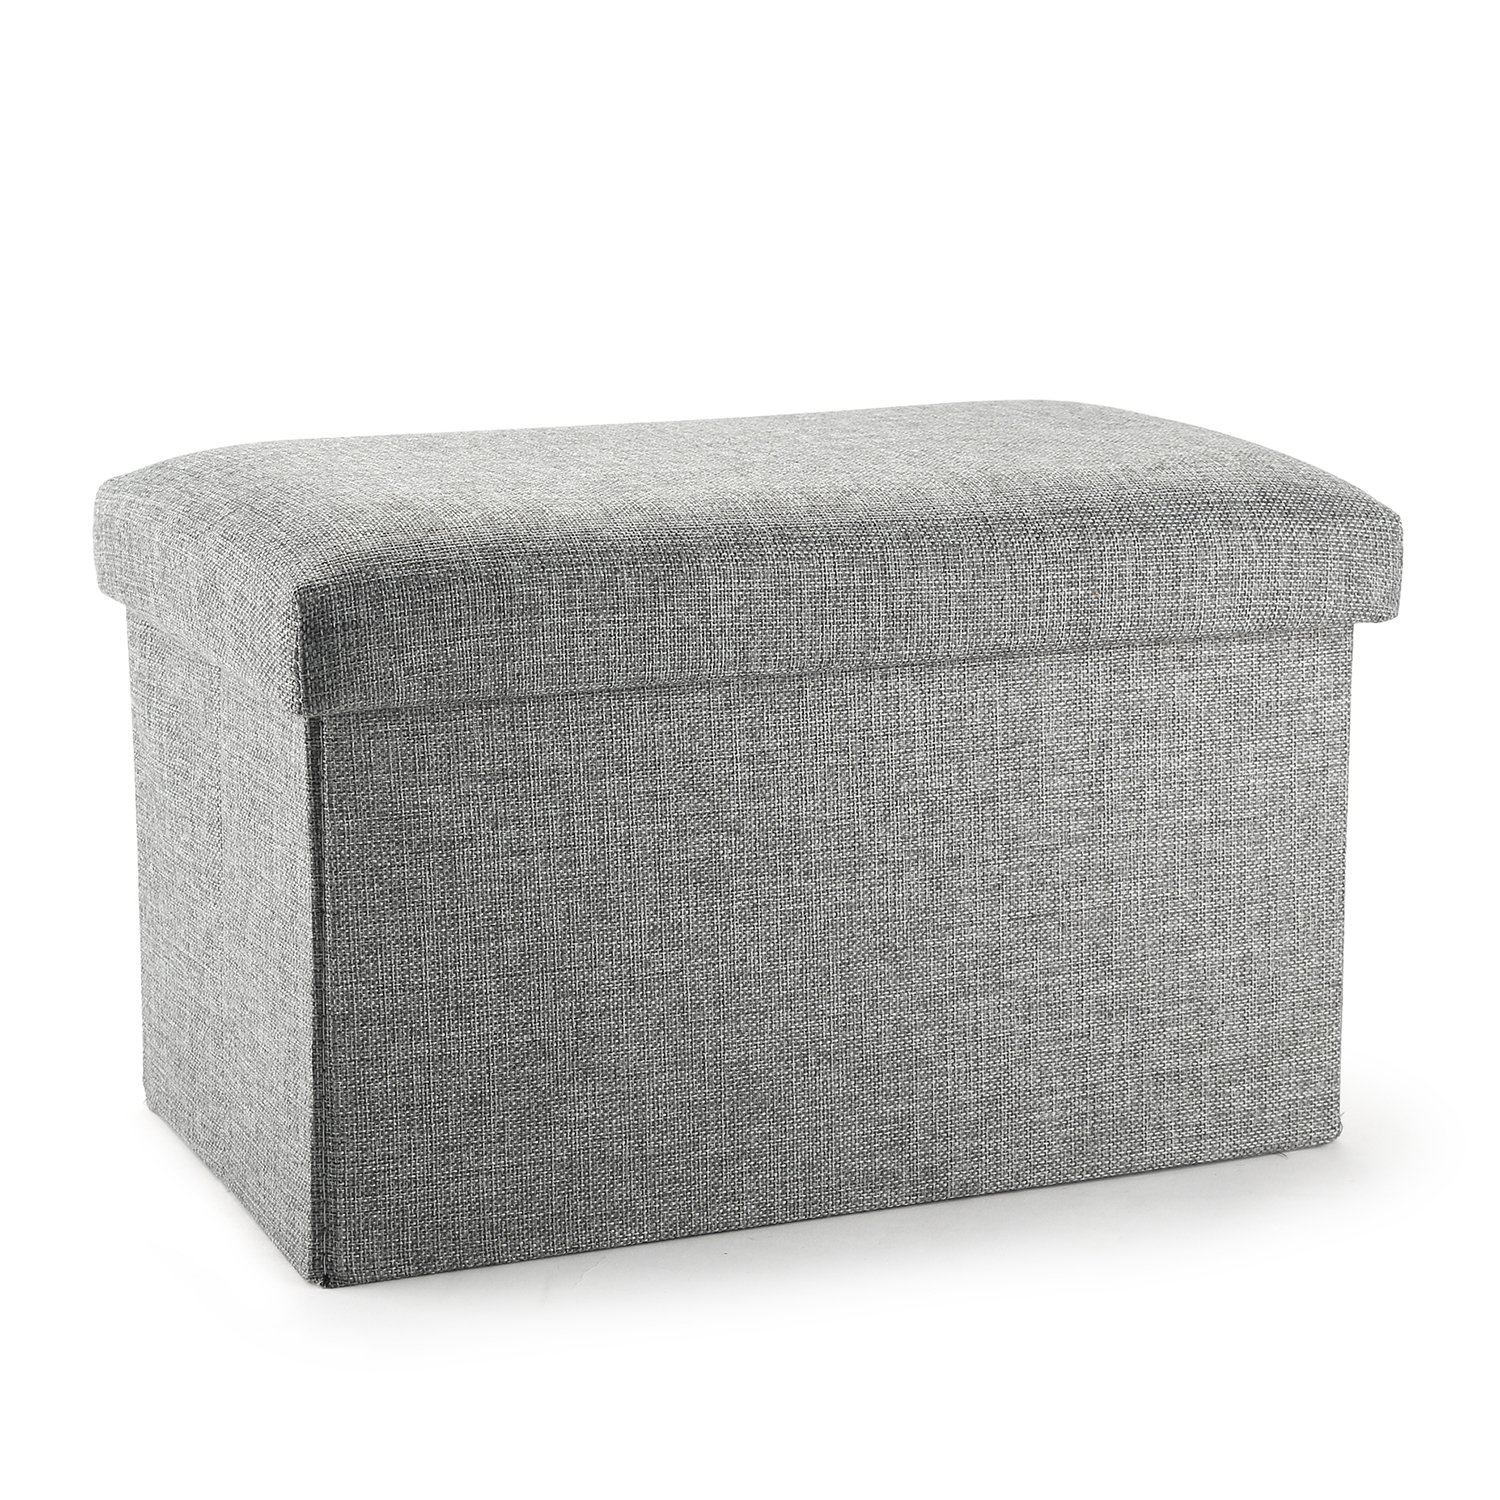 MEÉLIFE Storage Ottoman, Mee'life Folding Foot Rest Stools Seat Table Ottomans Bench, Storage Containers Organizer with Lids for Office Home Garden(Gray)